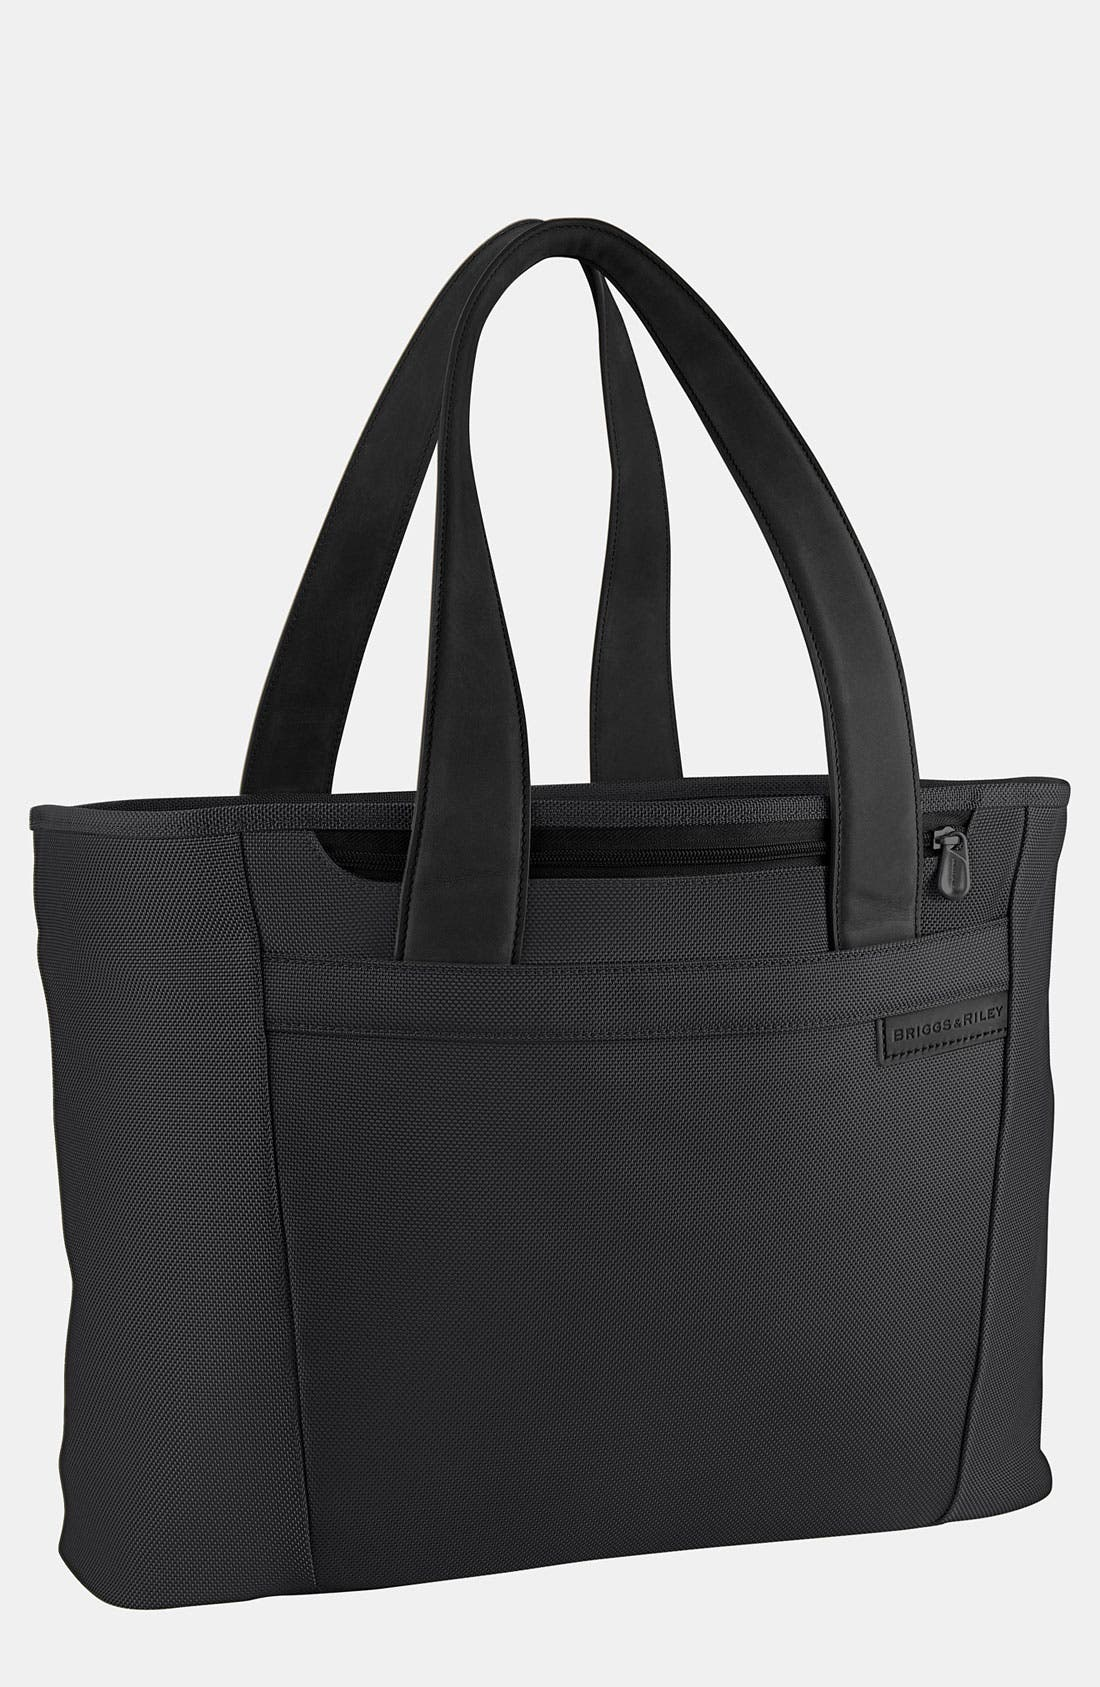 BRIGGS & RILEY 'Large Baseline' Shopping Tote, Main, color, BLACK